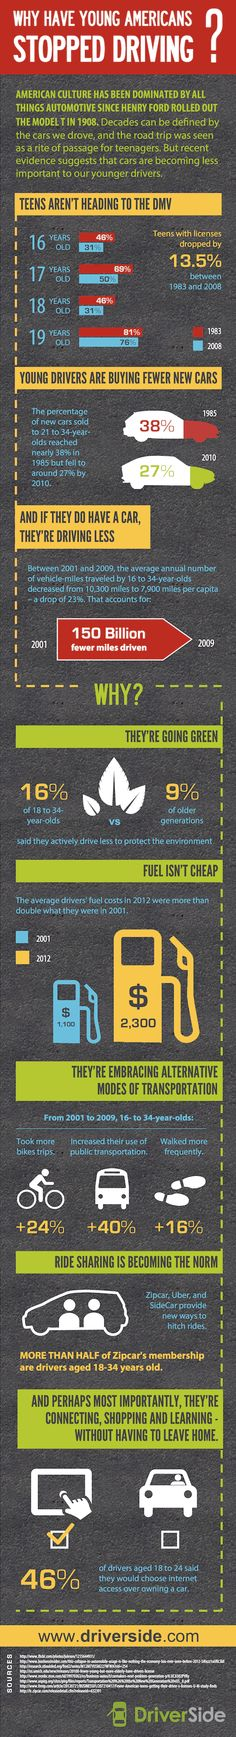 Infographic: Why Have Young Americans Stopped Driving